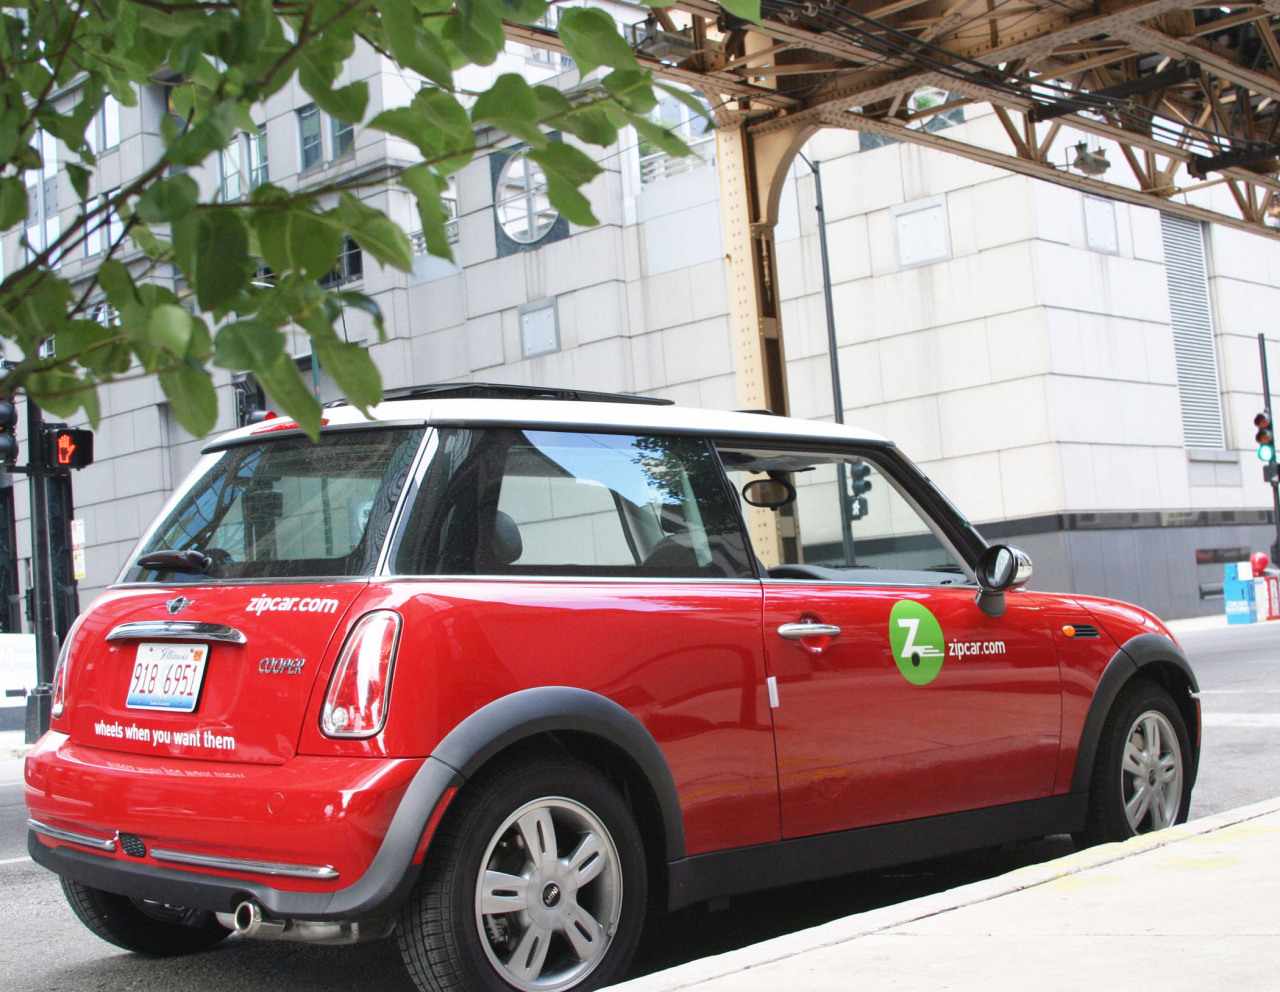 "So Avis has bought collaborative consumption poster child company Zipcar for $12.25 a share. As you might imagine, this has sparked a number of reactions, from those concerned that, consumed by a fusty incumbent, the innovative upstart will now lose its way, to those excited at the scale Avis can lend the still-fledgling company. The press release doesn't say much beyond the expected platitudes, though Avis ""anticipates"" that key Zipcar executives such as CEO Scott W. Griffith will remain at the helm of the company. It's certainly been interesting to watch Zipcar's journey so far—and that will continue as the firm moves to become a test case for those looking to manage disruption both internally and at scale. Update: tweet from Zipcar cofounder Robin Chase neatly sums up the issues at hand:  ""Avis buys Zipcar. Should reduce fleet costs & make zip profitable. Concerned about whether OldCo can build NewCo in new innovative economy.""  [Photo c/o Zipcar]"